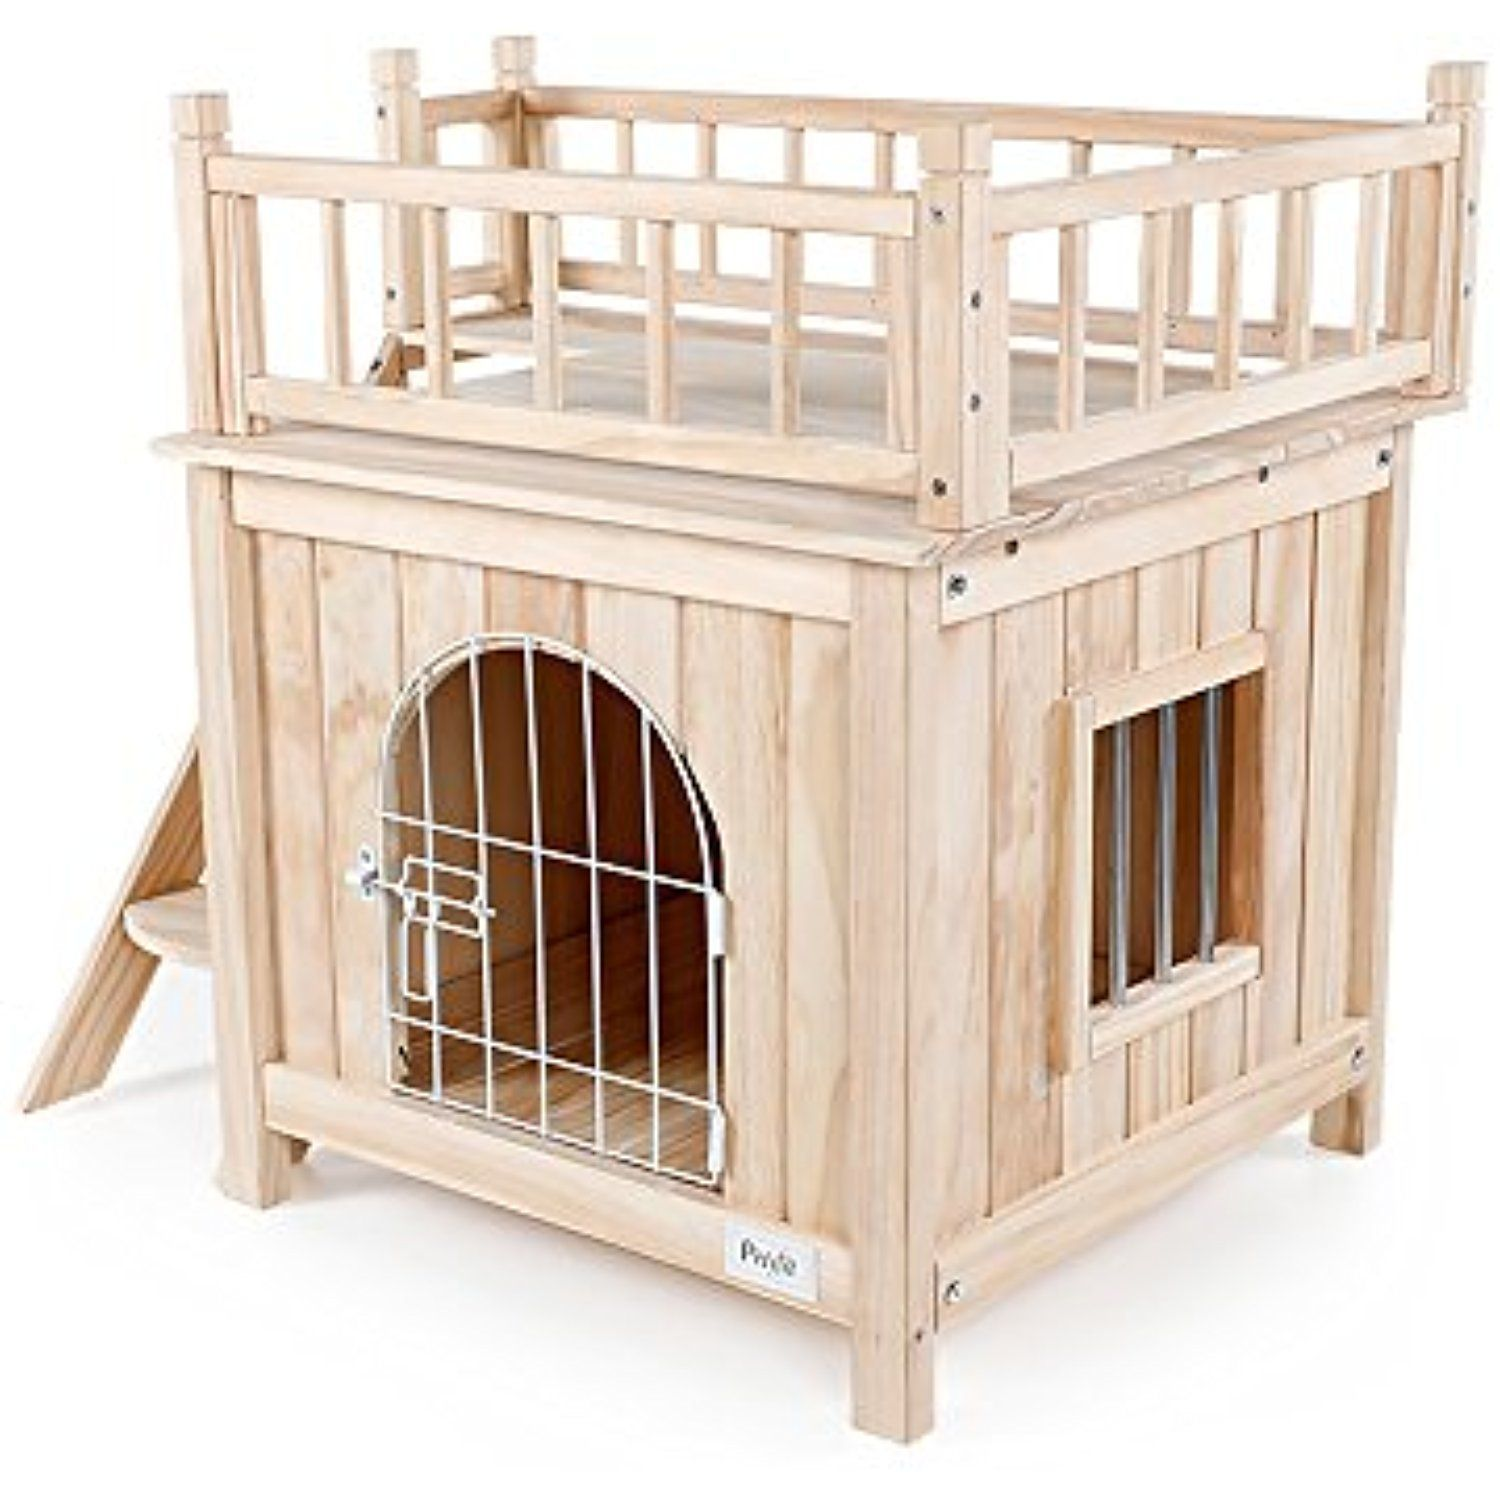 Wire Cat Houses Data Schema 5 Wiring Diagram For House Petsfit Indoor Wooden Pet Dog With Stairs And Door 28 Rh Pinterest Com American